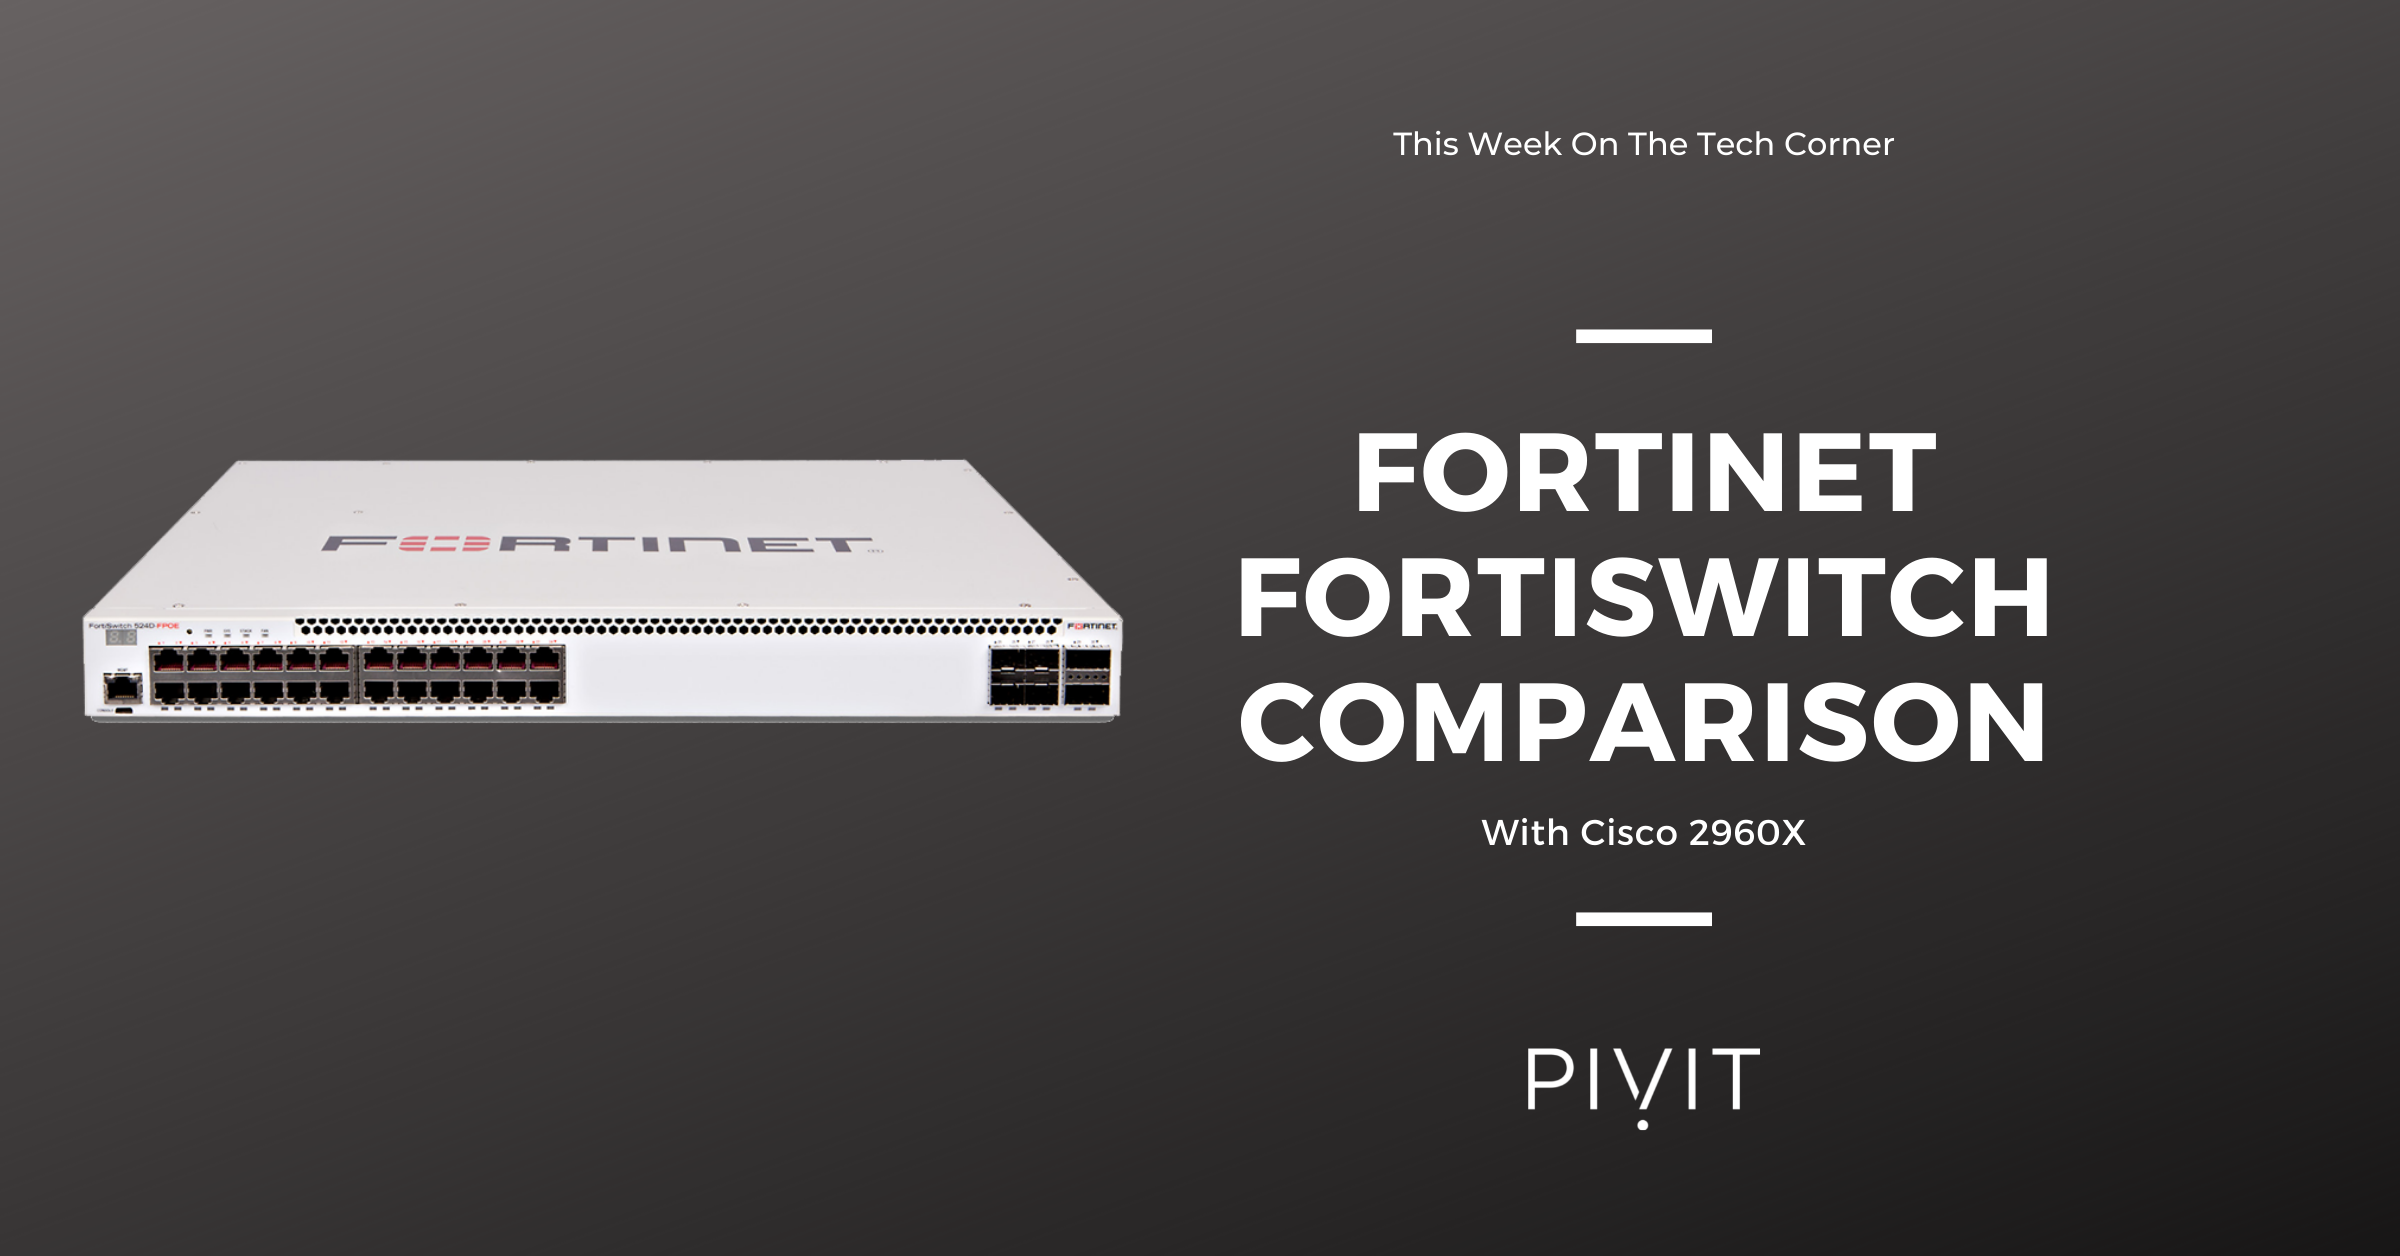 Fortinet FortiSwitch comparison featured image with PivIT branding and an image of the unit